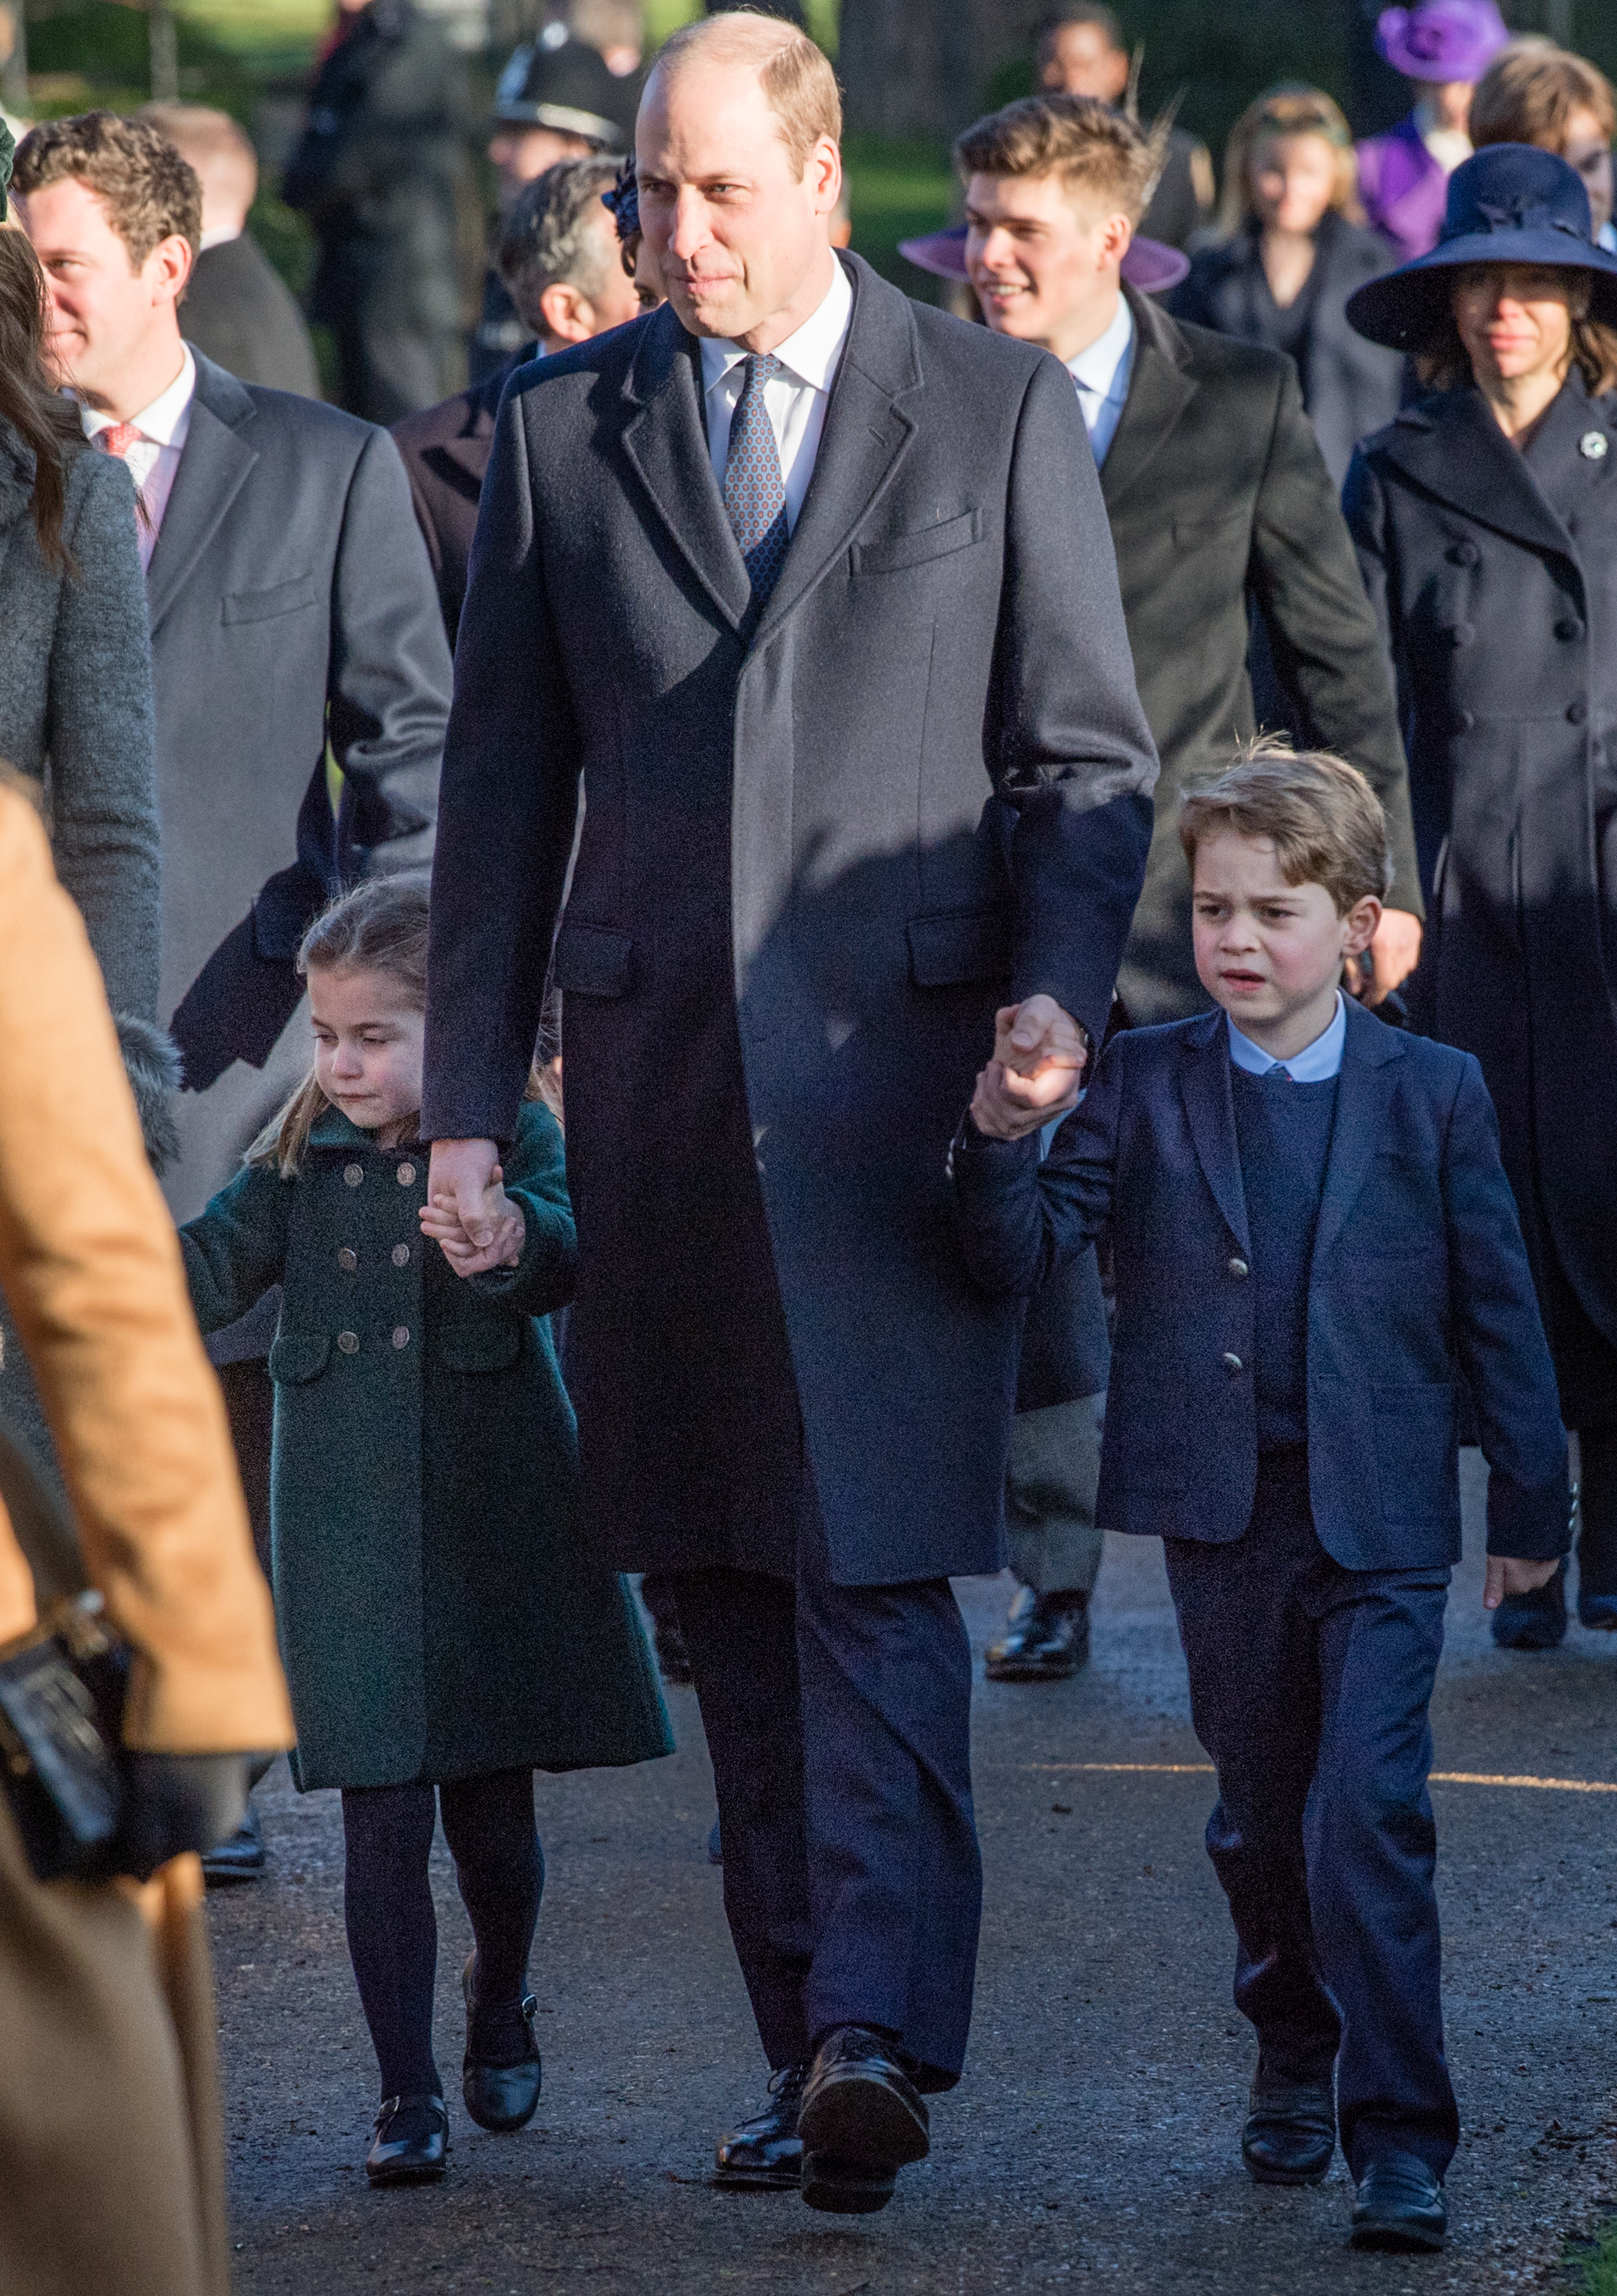 KING'S LYNN, ENGLAND - DECEMBER 25:  Prince William, Duke of Cambridge, Prince George of Cambridge and Princess Charlotte of Cambridge attend the Christmas Day Church service at Church of St Mary Magdalene on the Sandringham estate on December 25, 2019 in King's Lynn, United Kingdom. (Photo by Pool/Samir Hussein/WireImage)